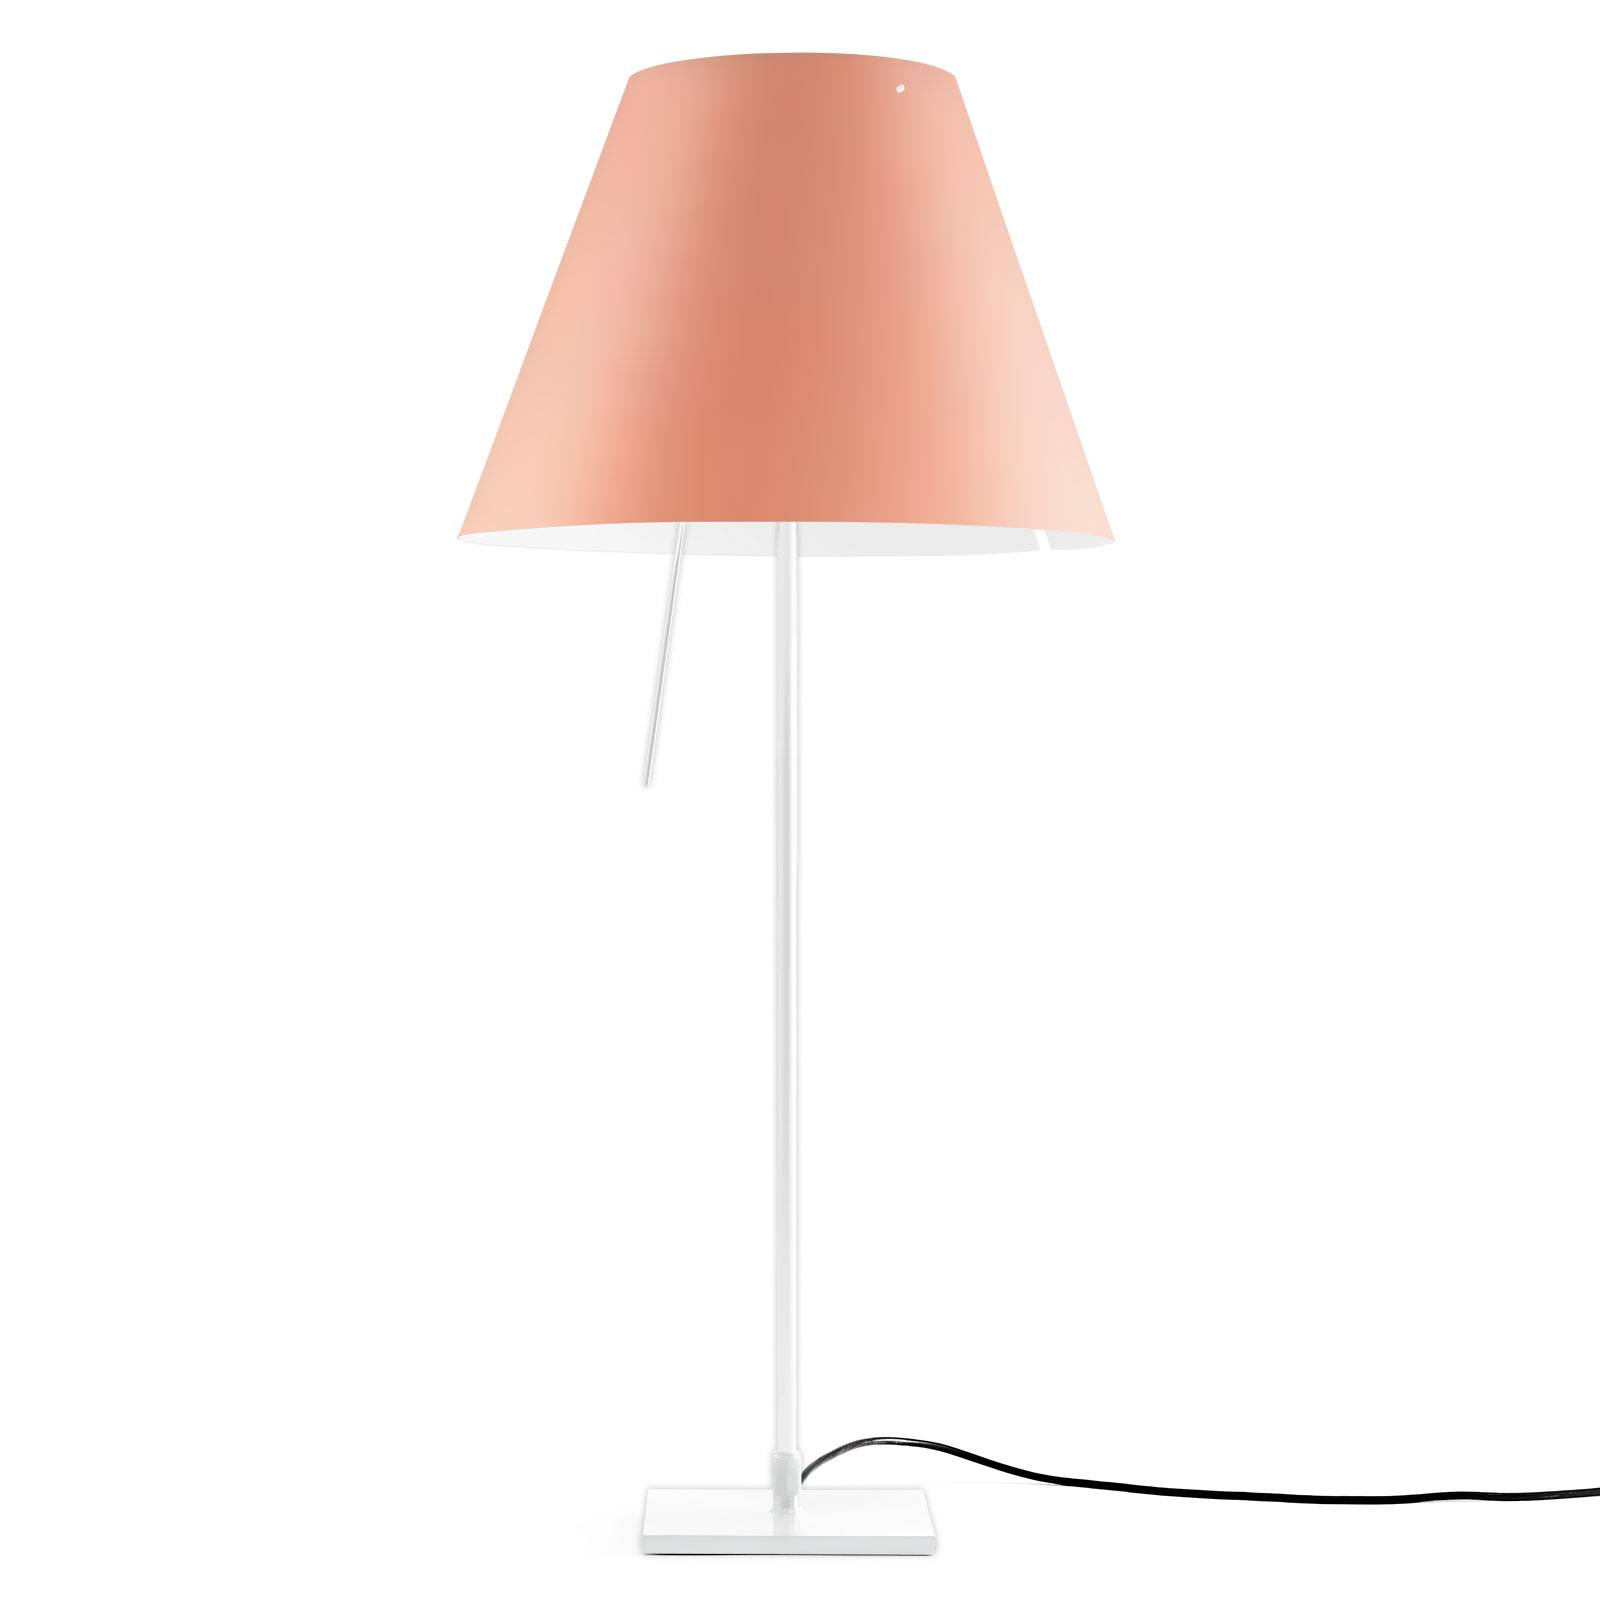 Luceplan Costanza tafellamp D13if wit/roze